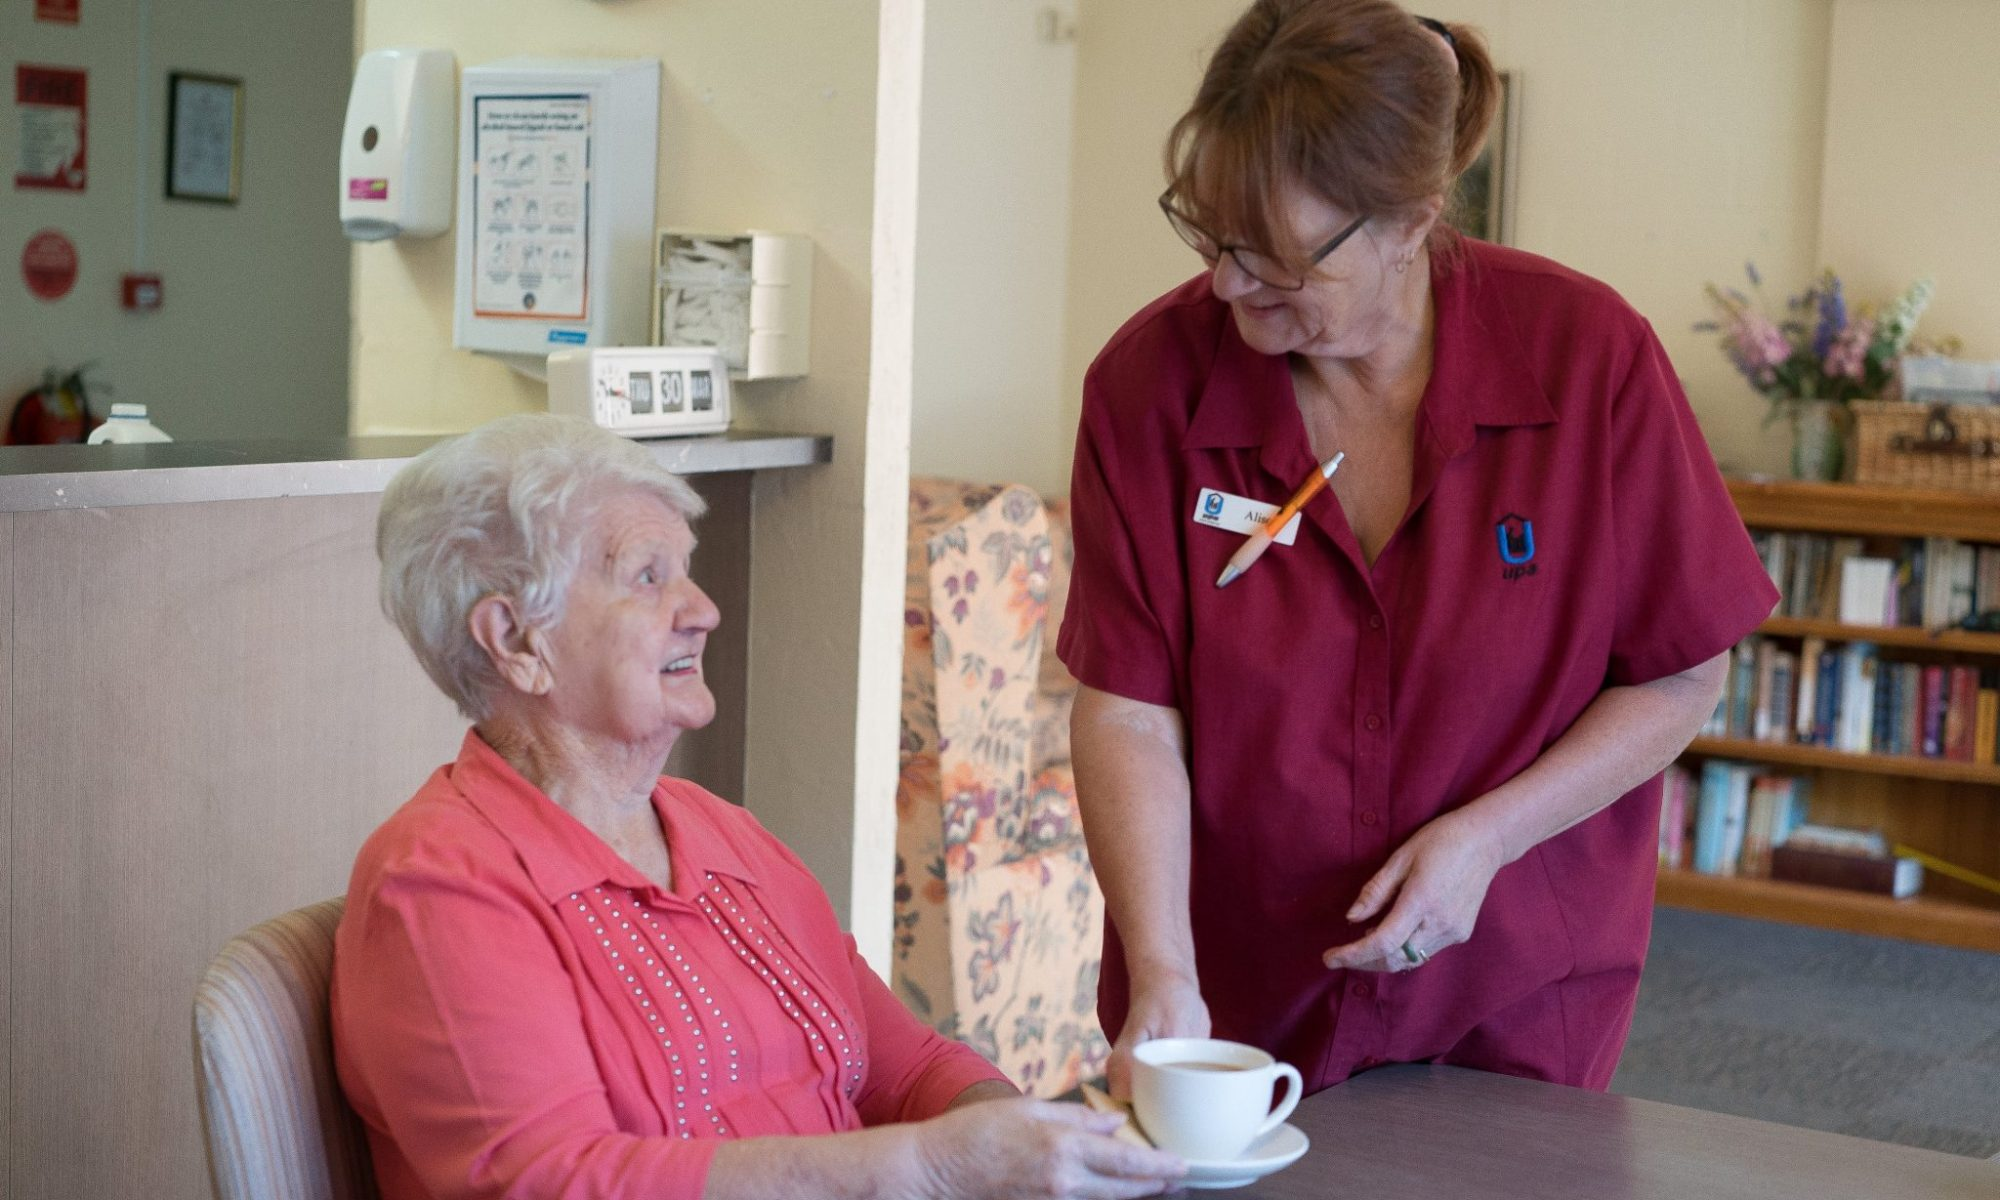 Assisted aged care living and services at Holbrook Hostel - Holbrrok-00079